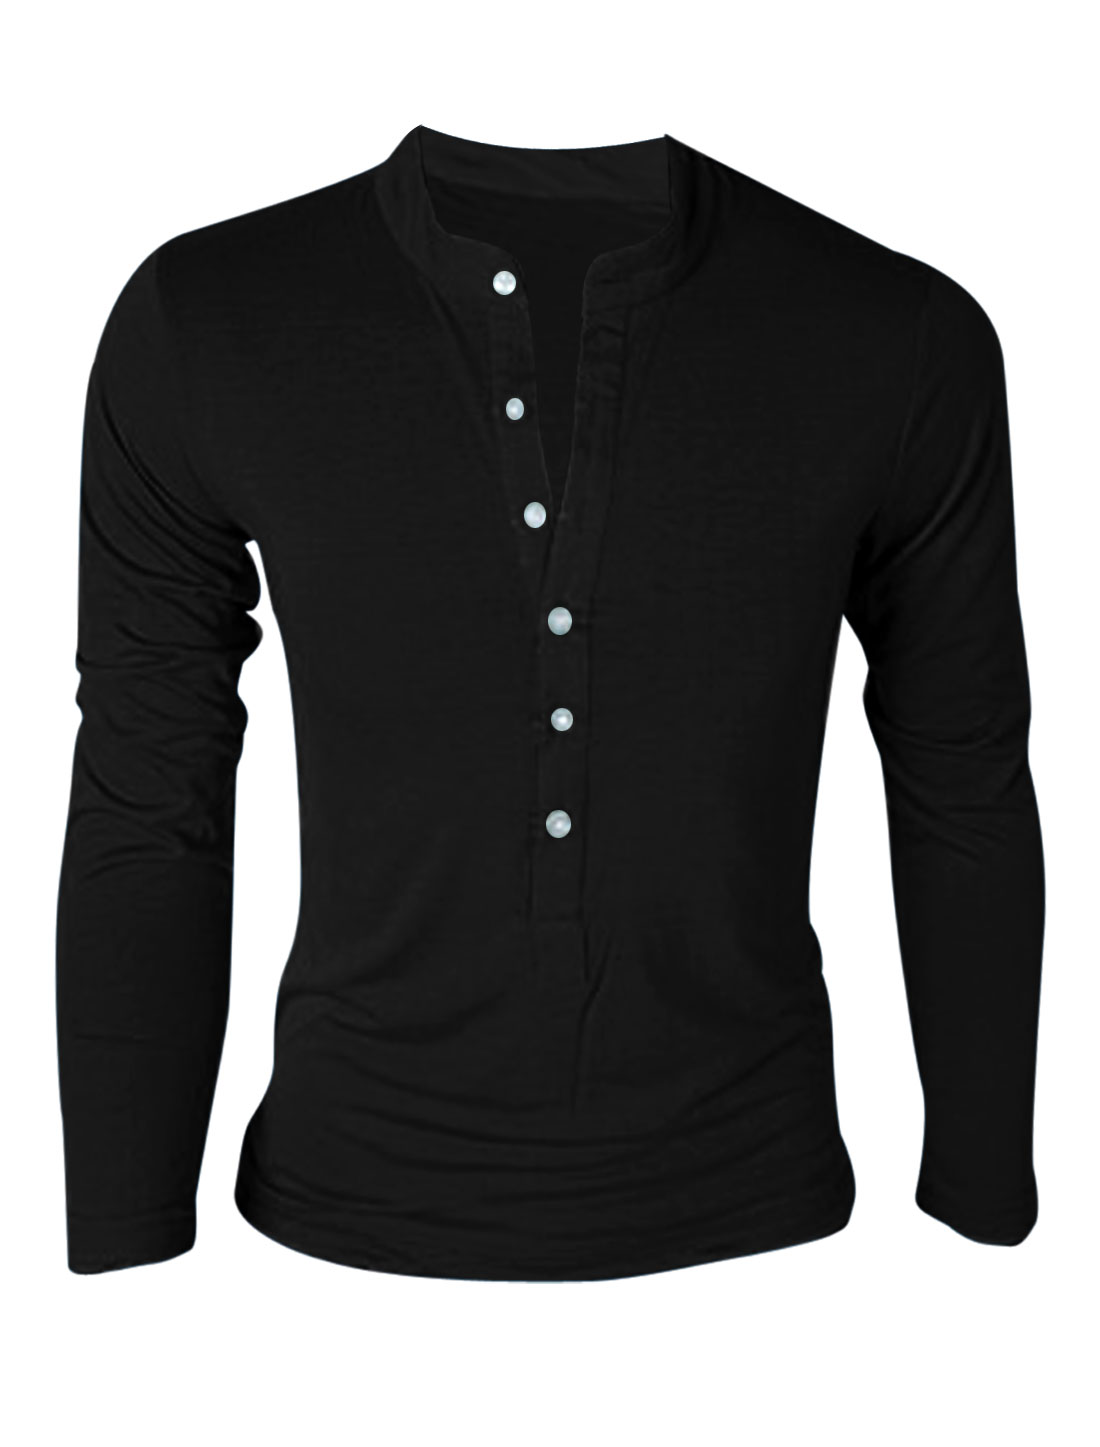 Men Stand Collar Button Up Long Sleeve Pullover T-Shirt Black M